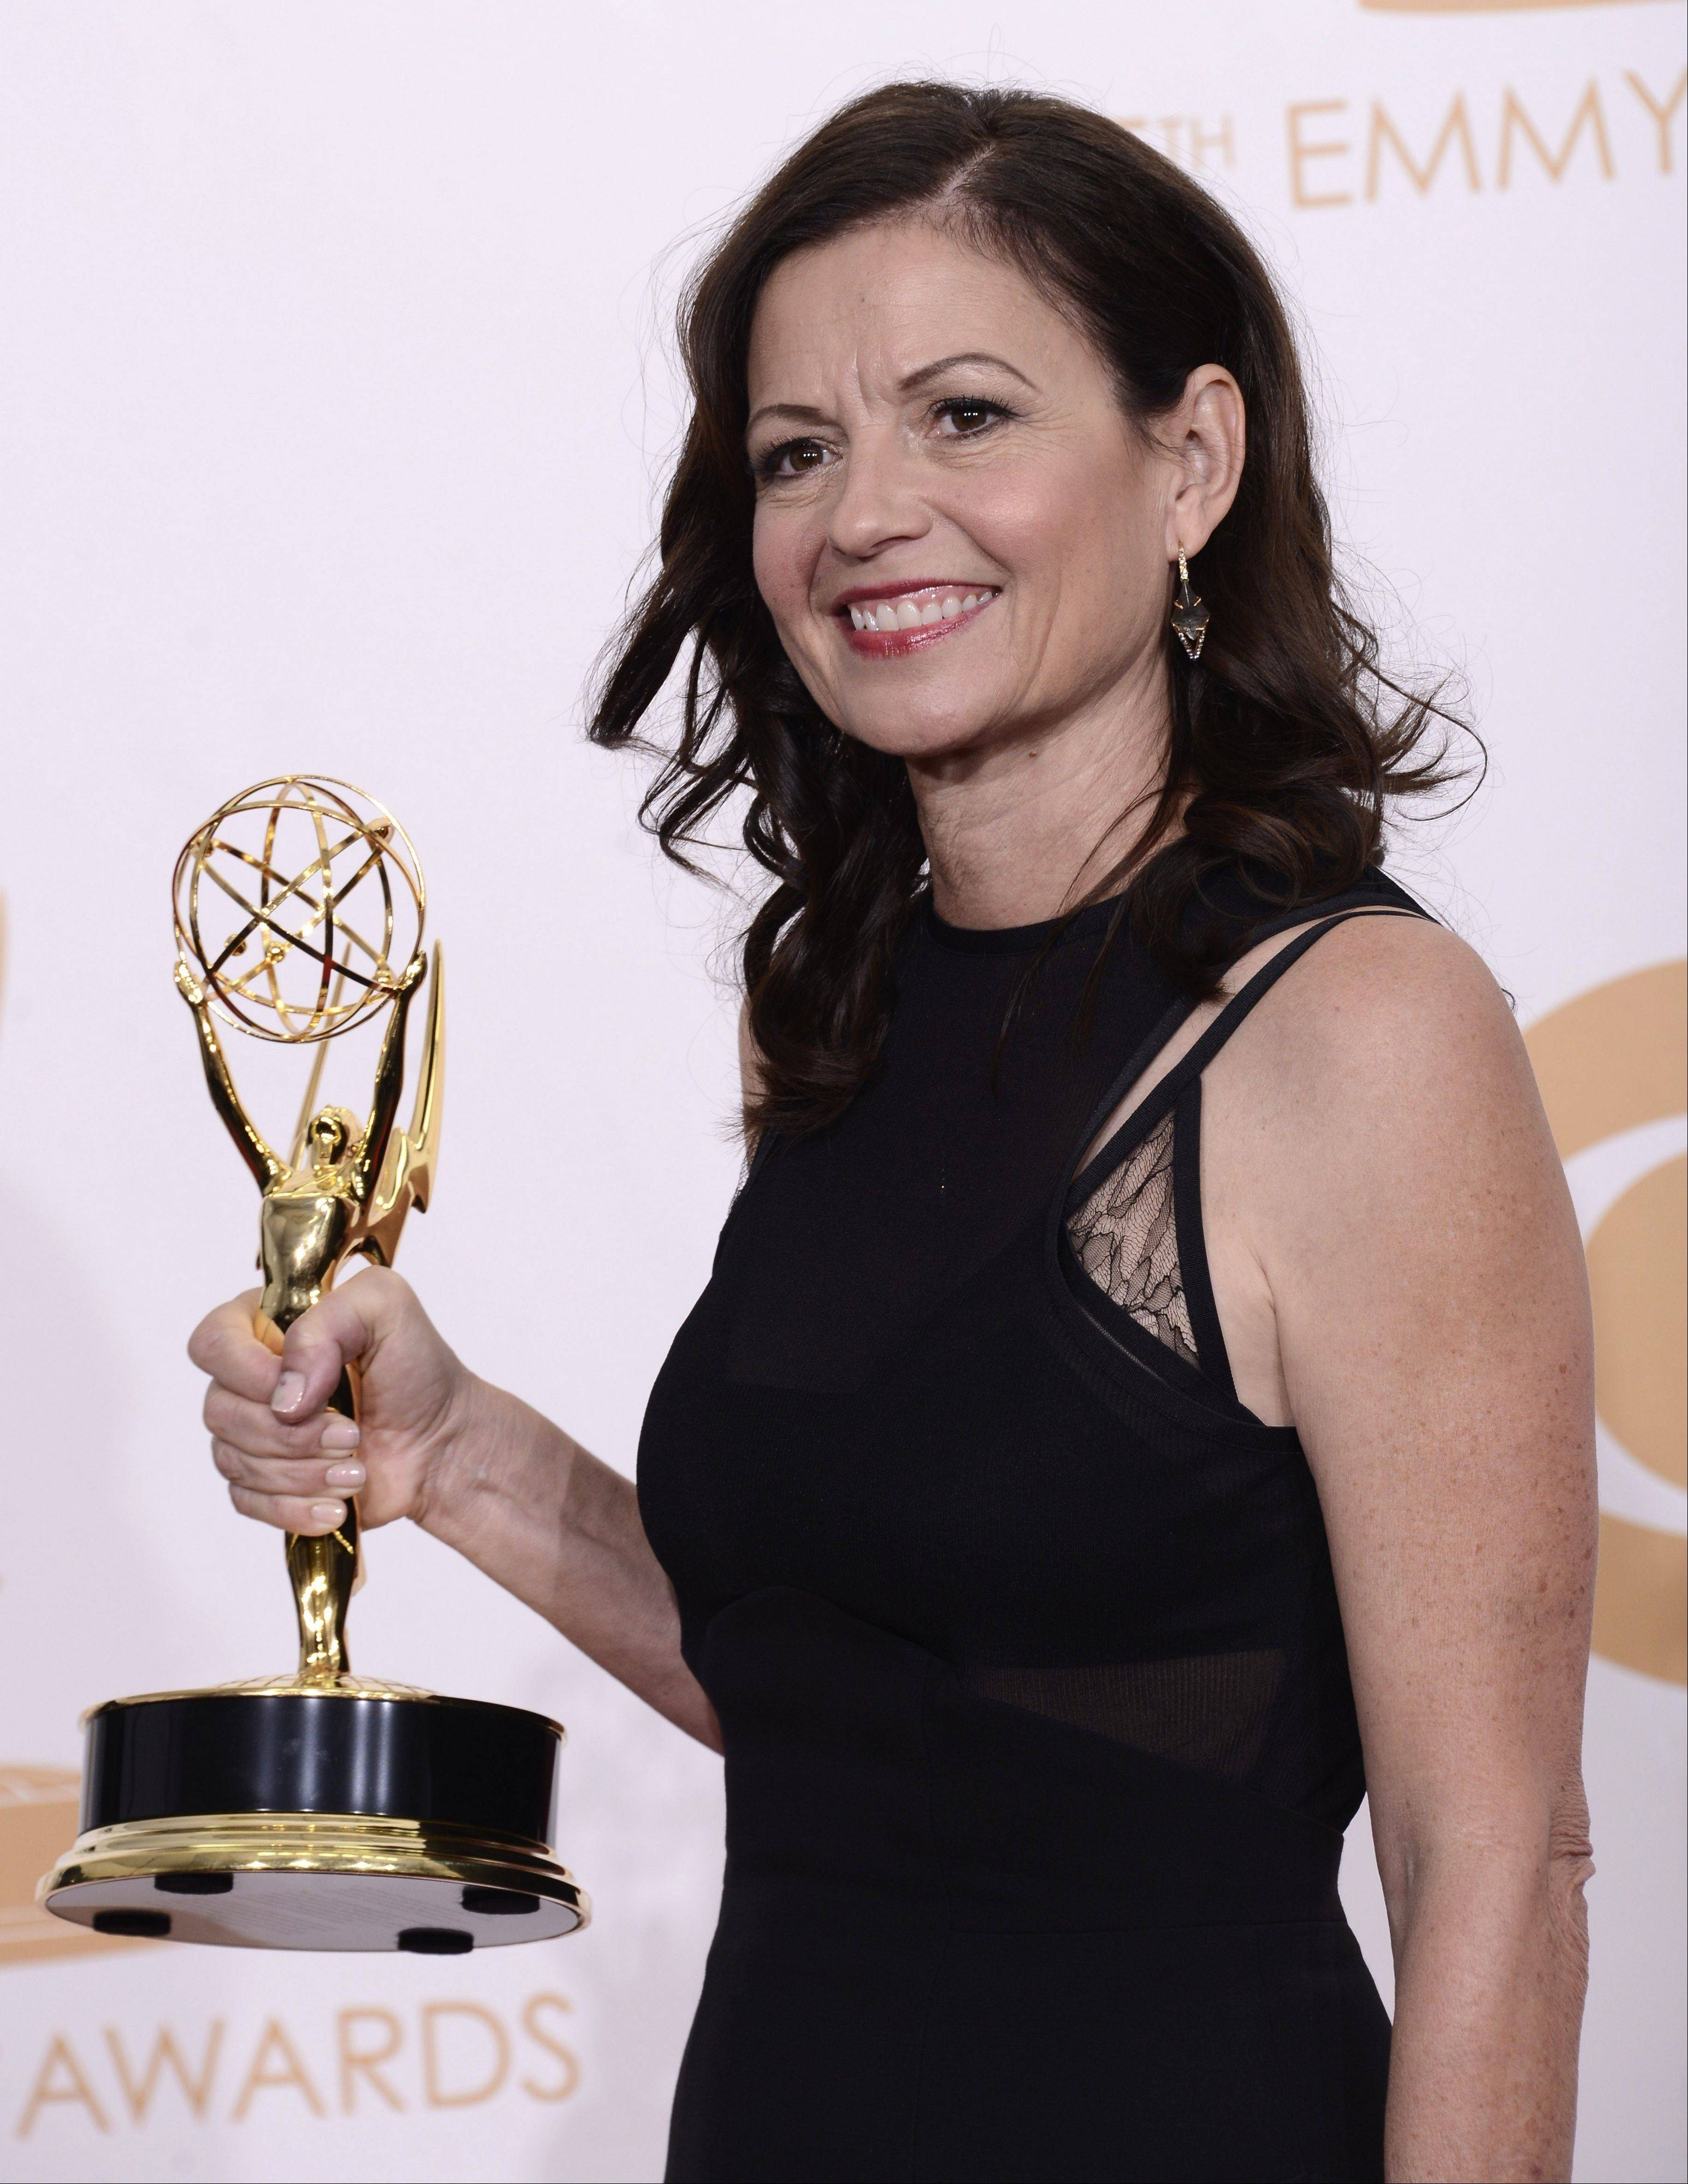 Director Gail Mancuso, a Melrose Park native, holds her Emmy for best directing for a comedy series for 'Modern Family' backstage at the 65th Primetime Emmy Awards at Nokia Theatre on Sunday in Los Angeles.